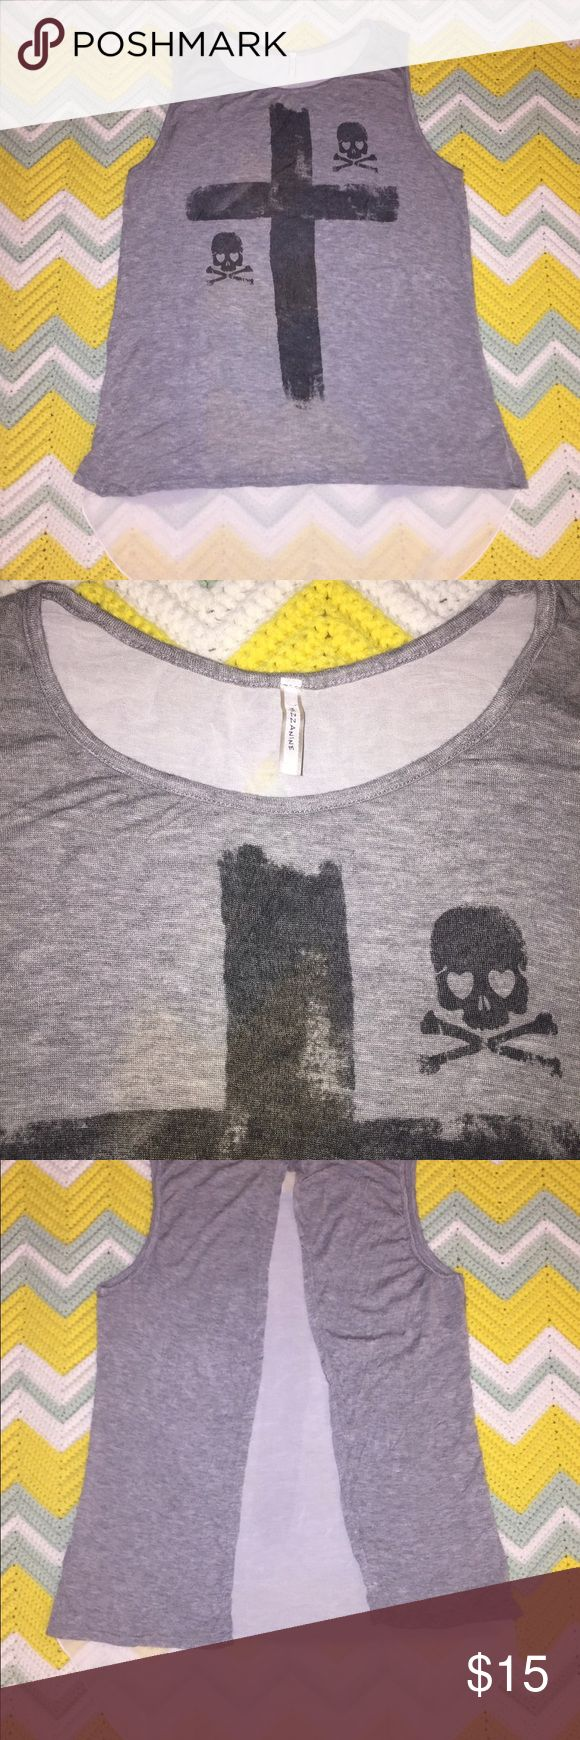 "Hi Low Skull 💀 💀 cross ✝️ semi-sheer top Item Condition: Excellent condition! Gently used with no flaws. No visible holes, stains, or tears! Color: gray with white sheer back Size: Large Measurements: (All measurements taken with garment lying flat are approximate) Chest (pit to pit): 19"" Length (top of collar to hem): 26"" front / 32.5"" back All items are from a smoke free and pet free home Tops Blouses"